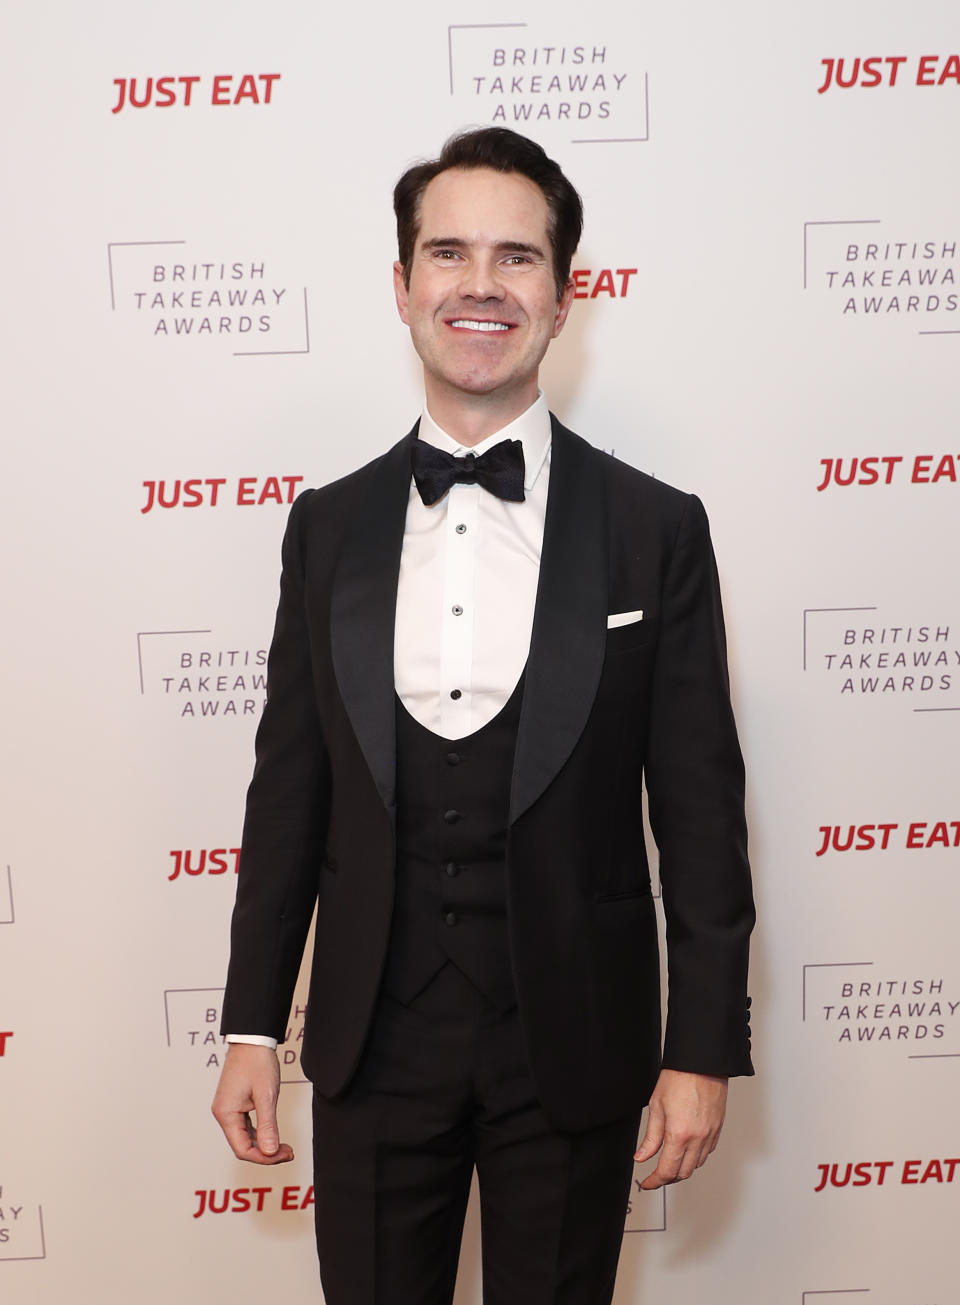 LONDON, ENGLAND - JANUARY 27: Jimmy Carr attends the fifth annual British Takeaway Awards, in association with Just Eat at The Savoy Hotel on January 27, 2020 in London, England. (Photo by David M. Benett/Dave Benett/Getty Images for Just Eat)